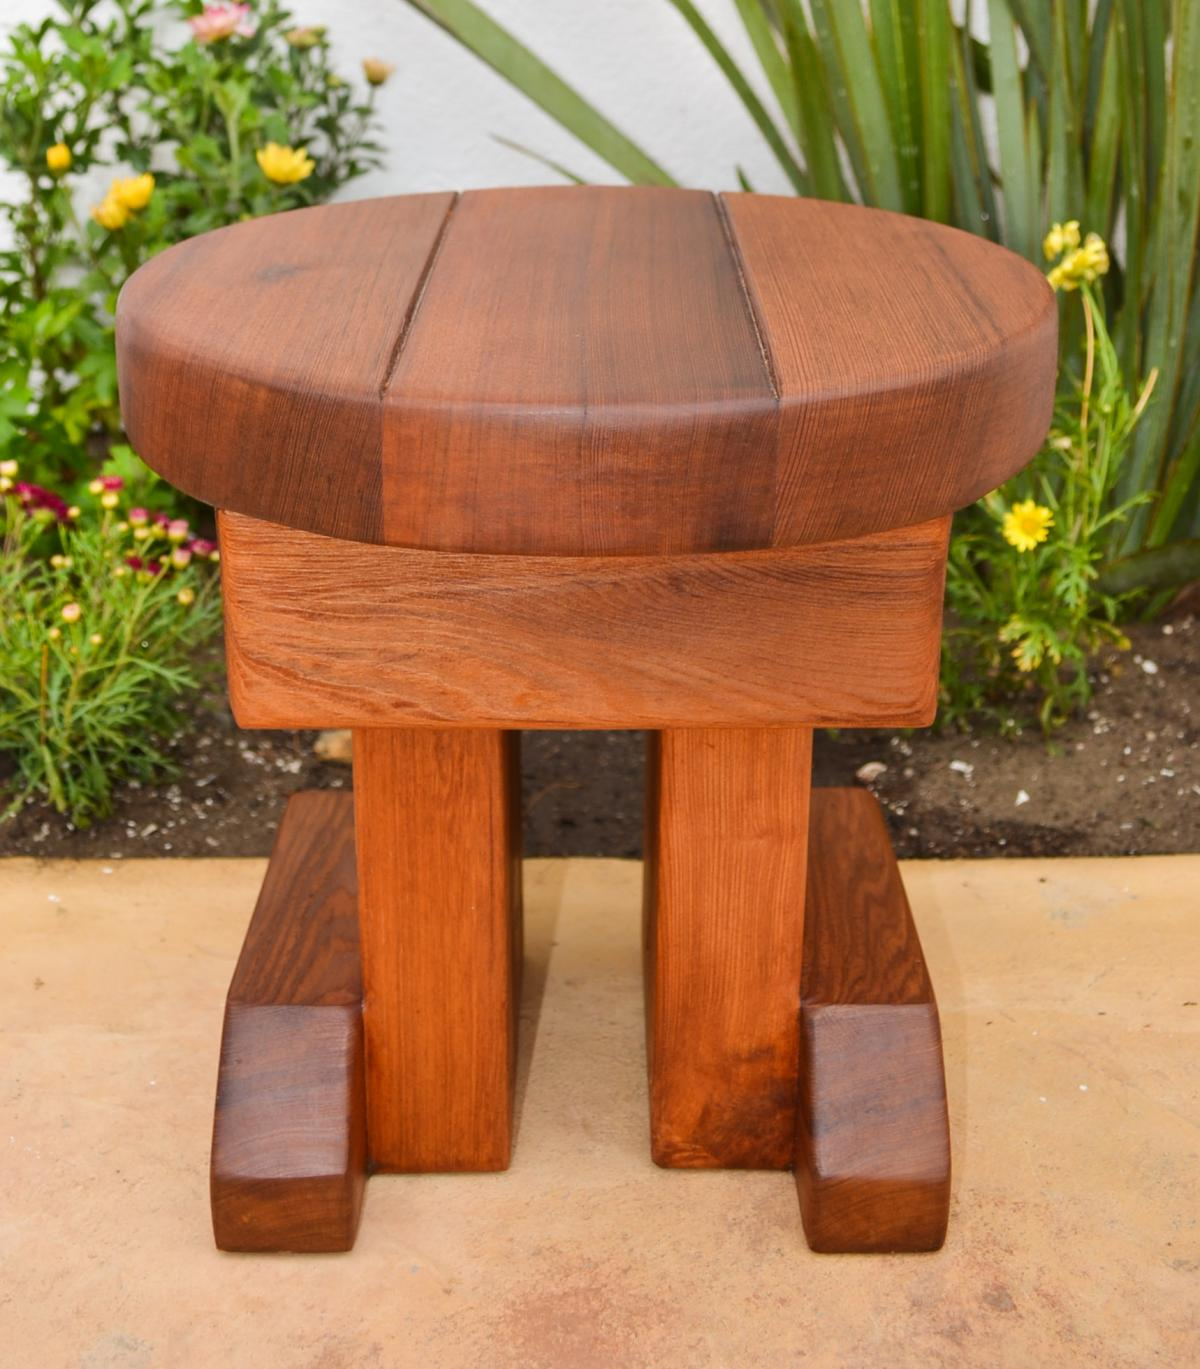 12 Inch Small Round Wood Side Table Redwood Side Tables